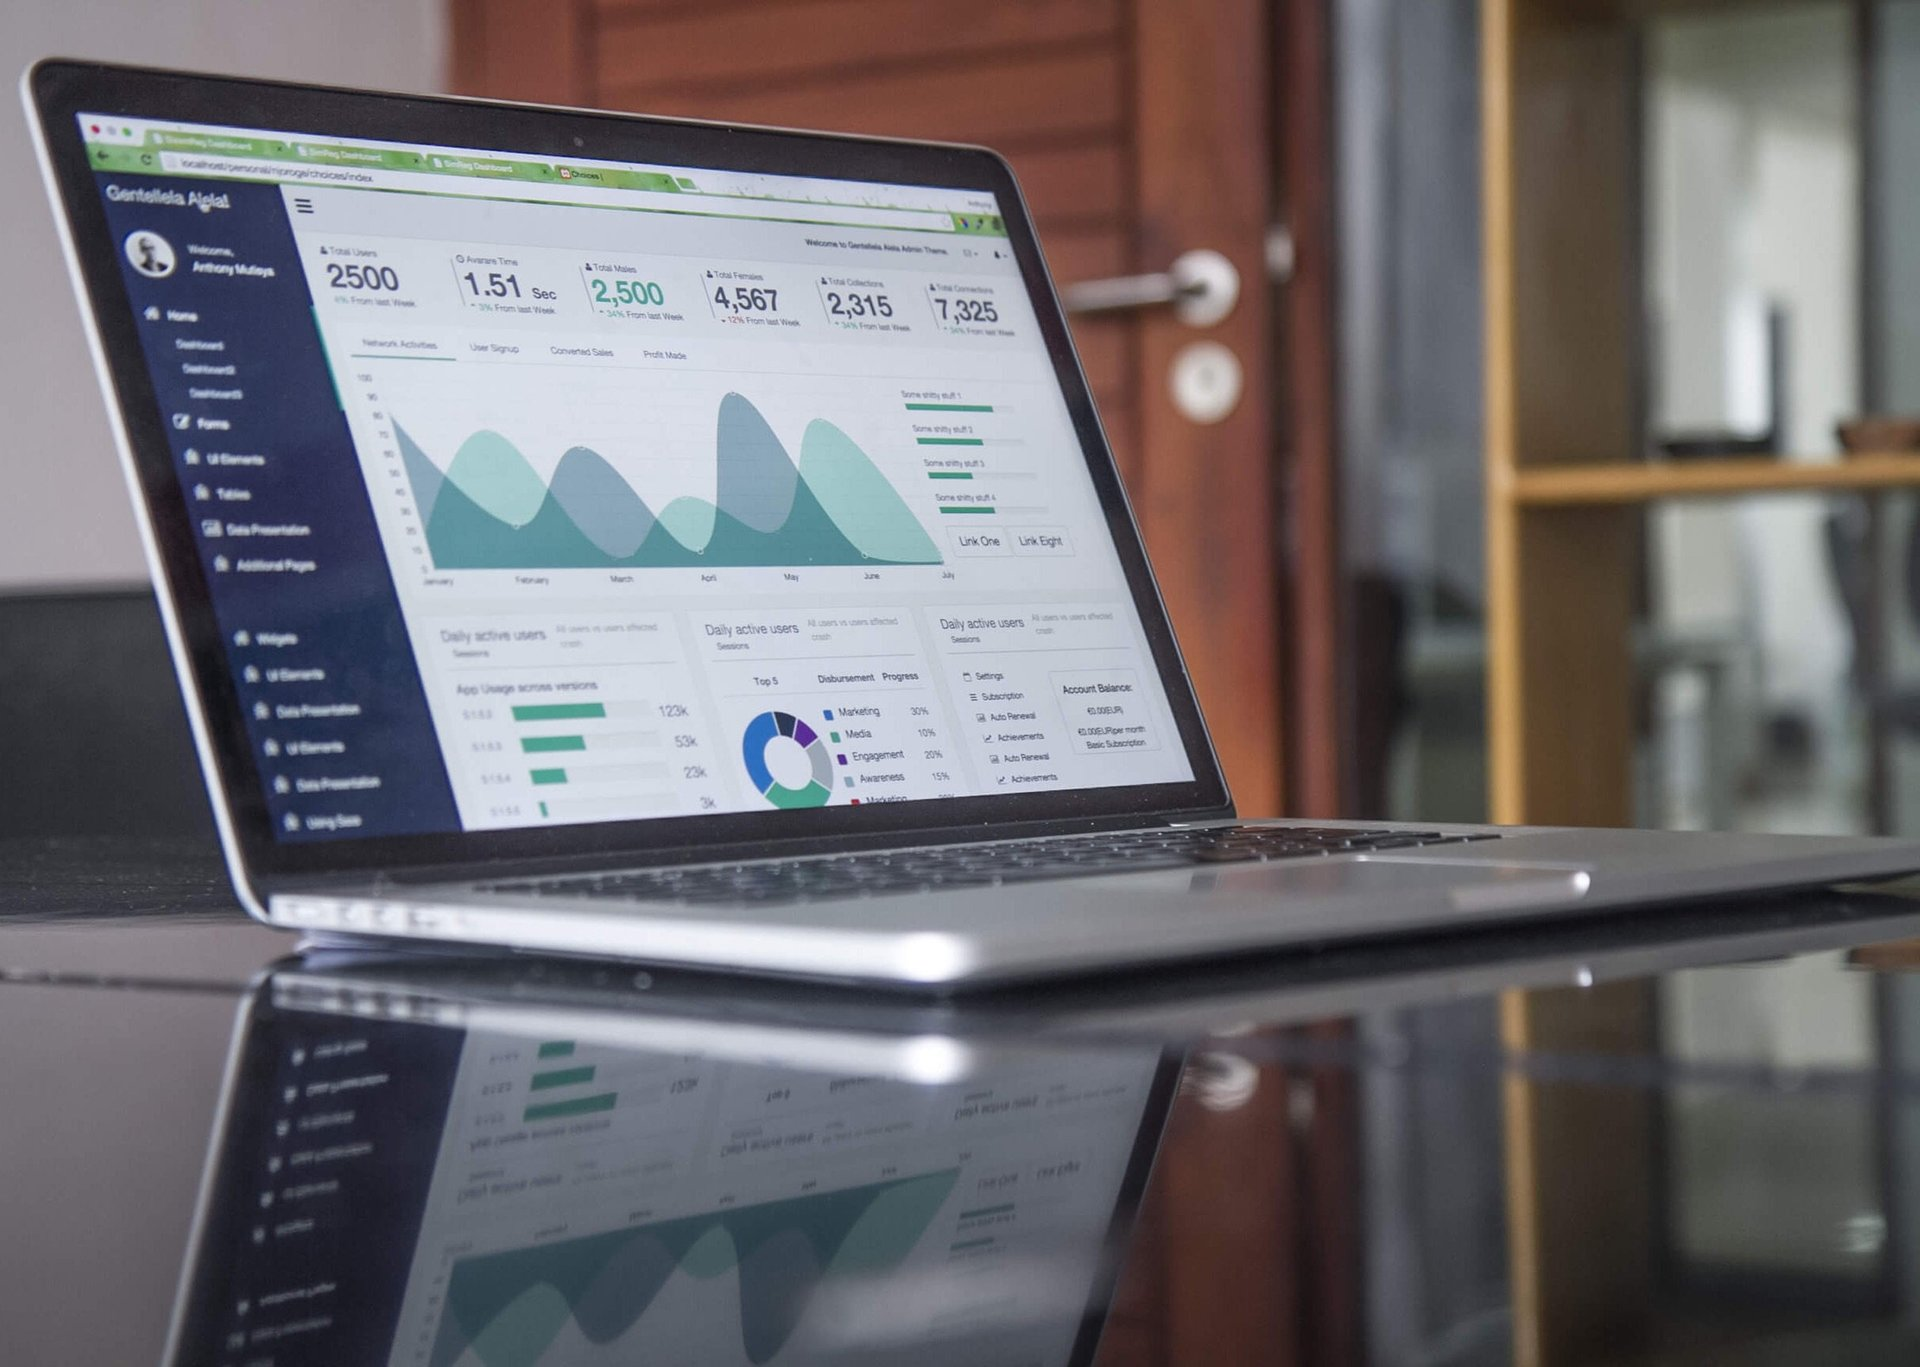 laptop open with business analytics